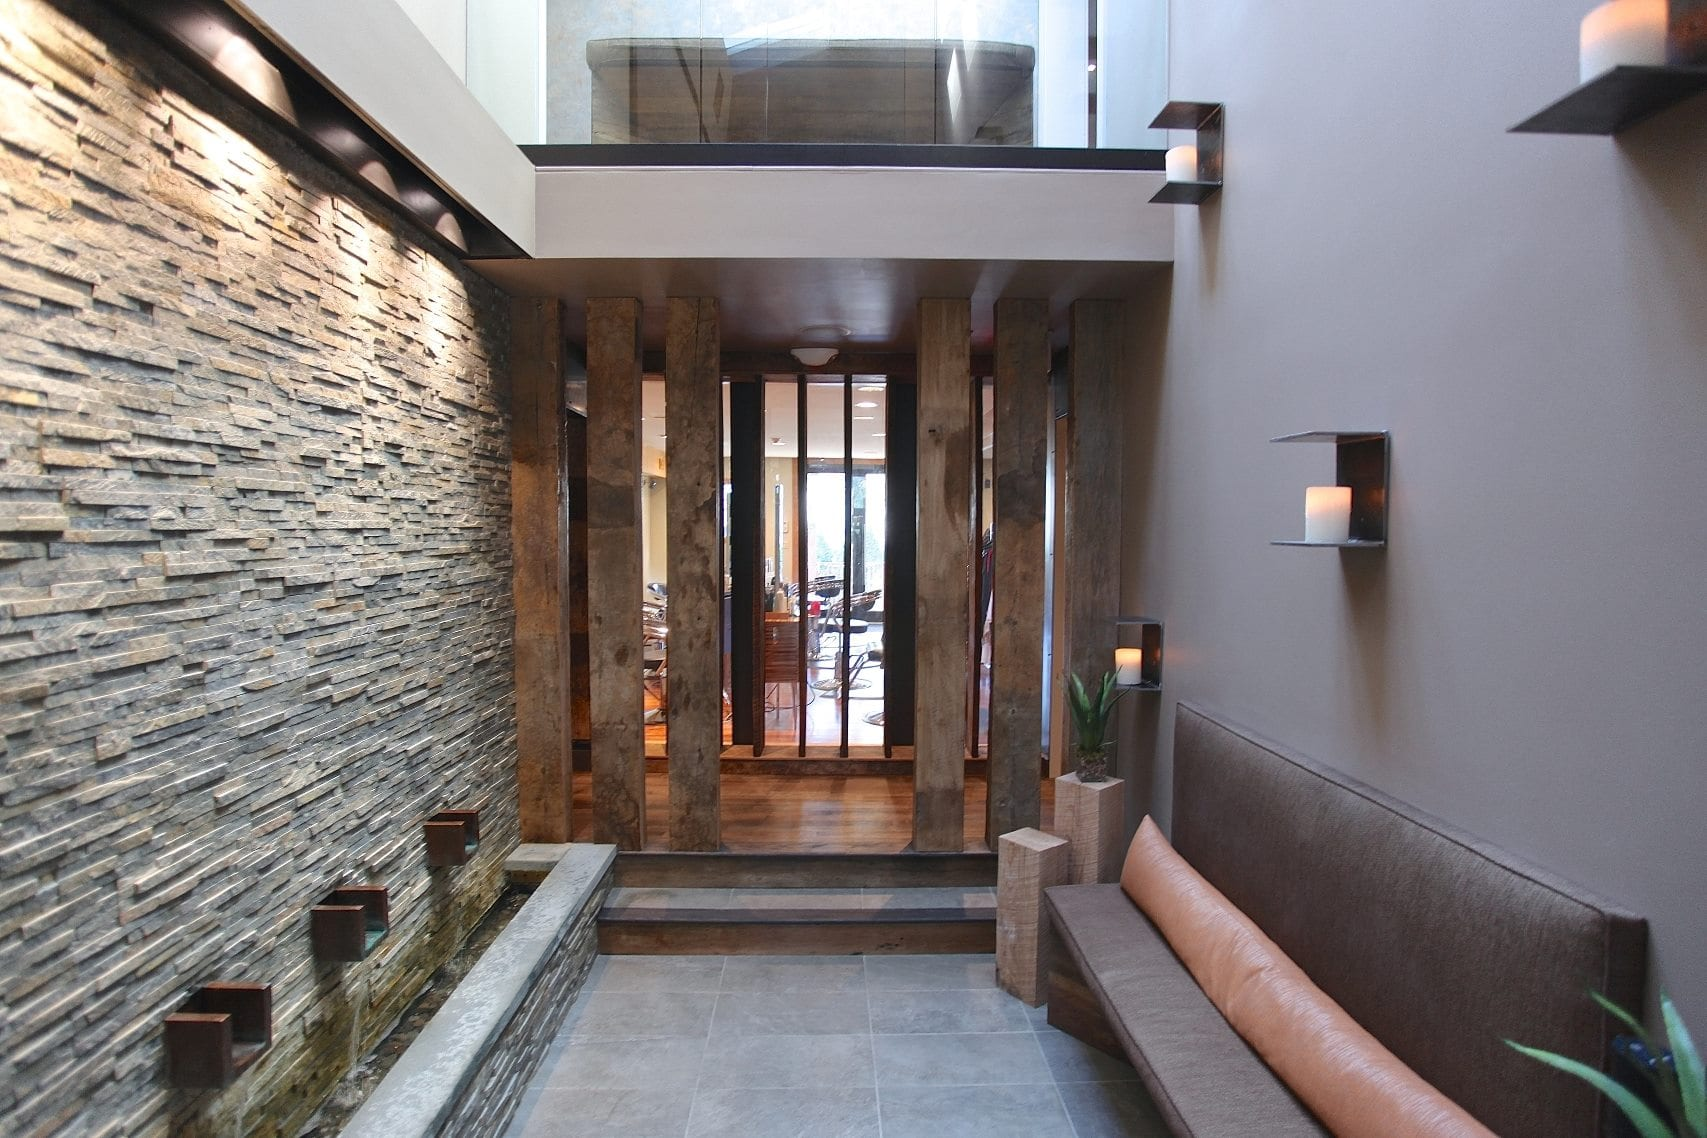 spa waiting room with stone walls and candles